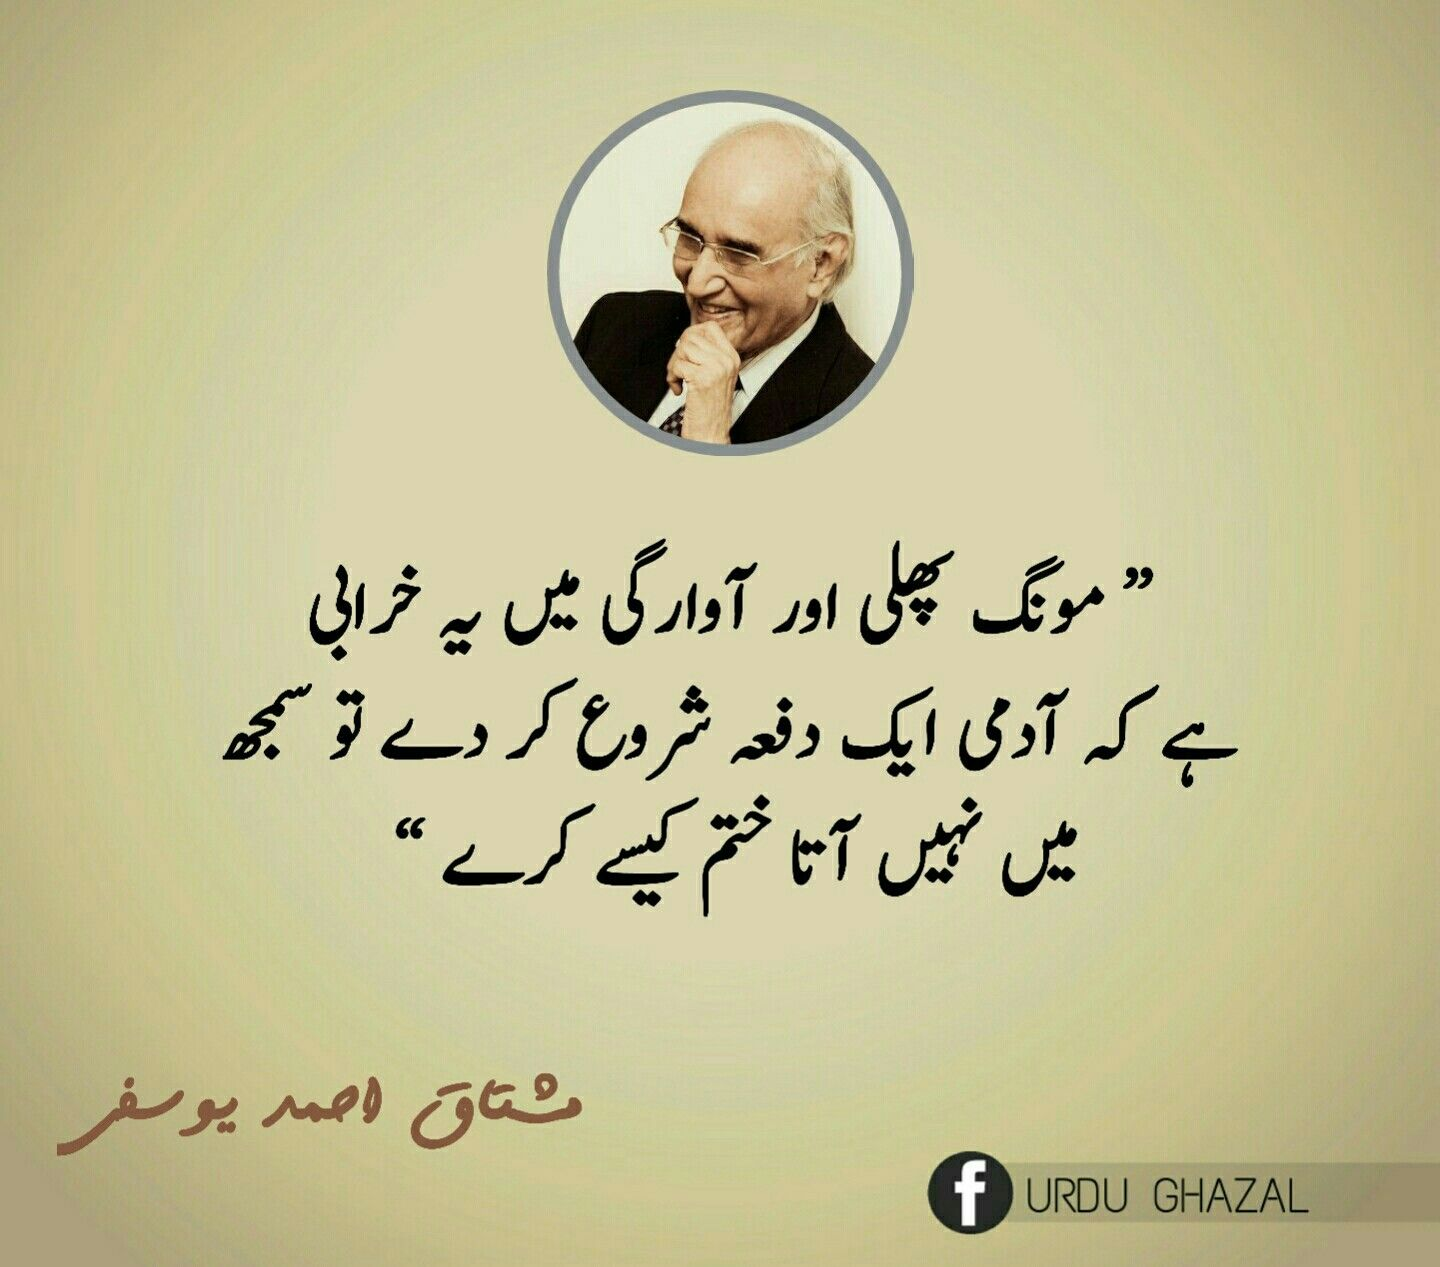 Pin By Lala Asif On Urdu Funny Quotes Sarcasm Funny Quotes For Teens Funny Quotes